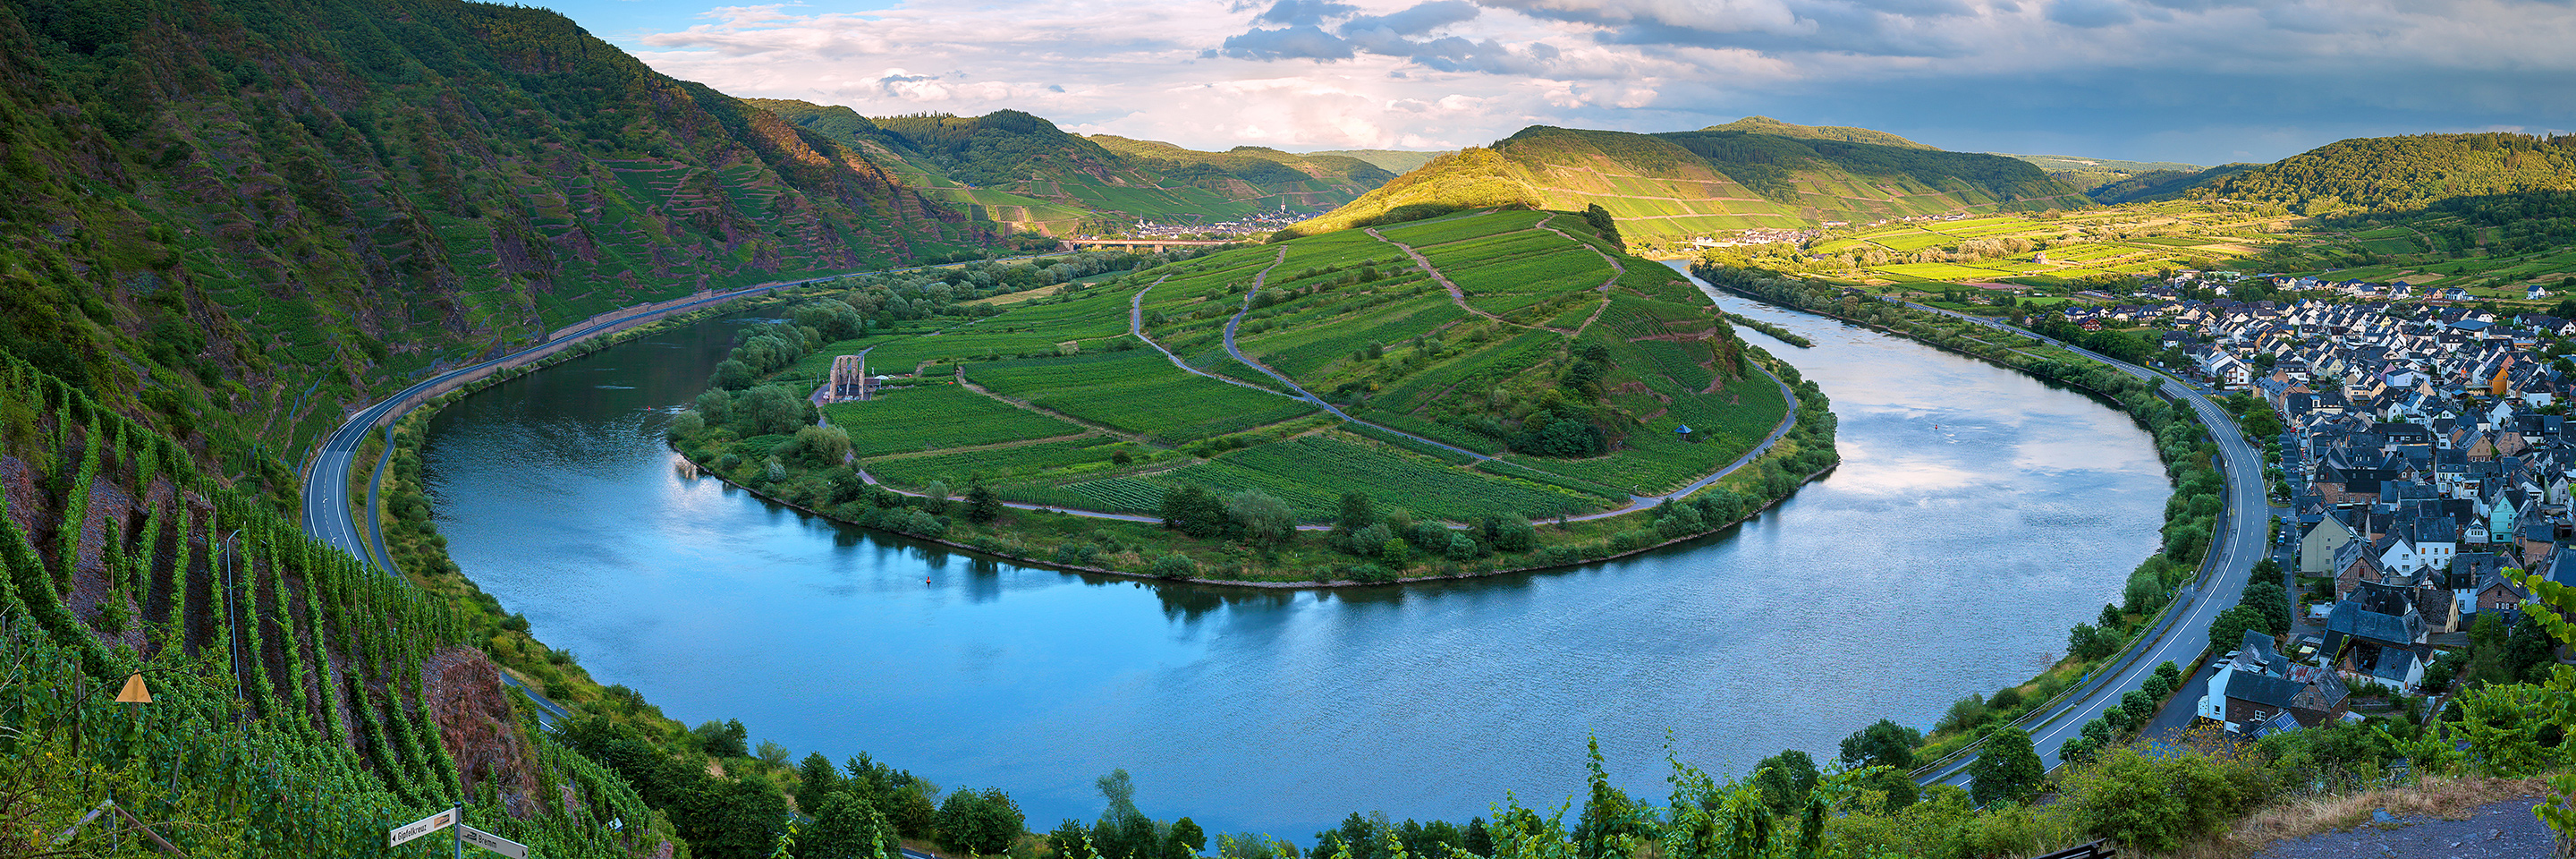 Avalon Moselle River Cruise